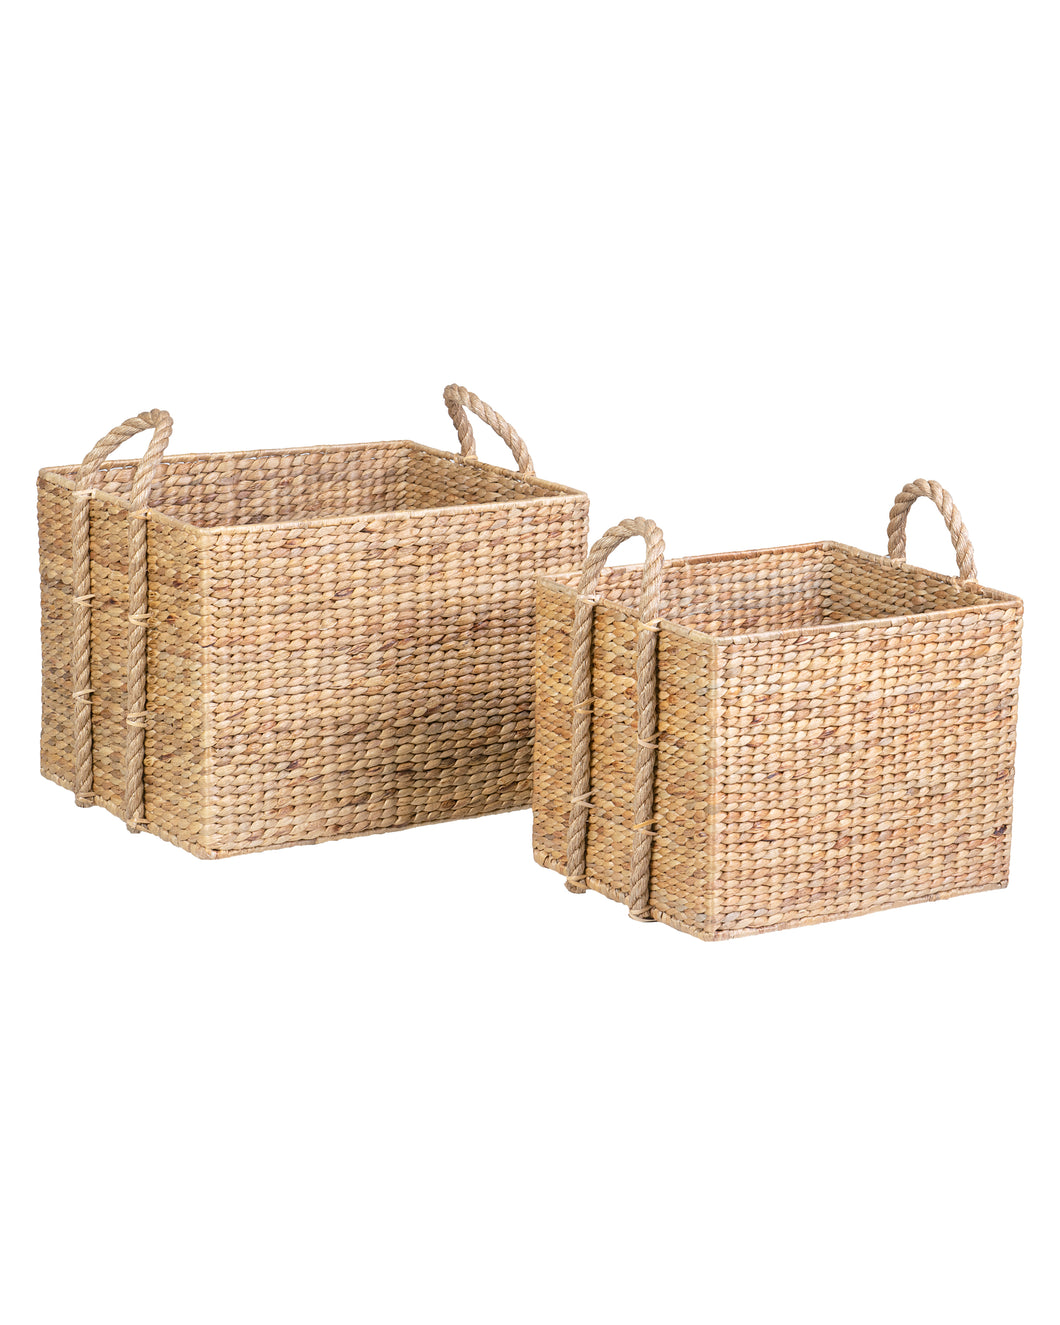 Tyler Baskets - Set of 2